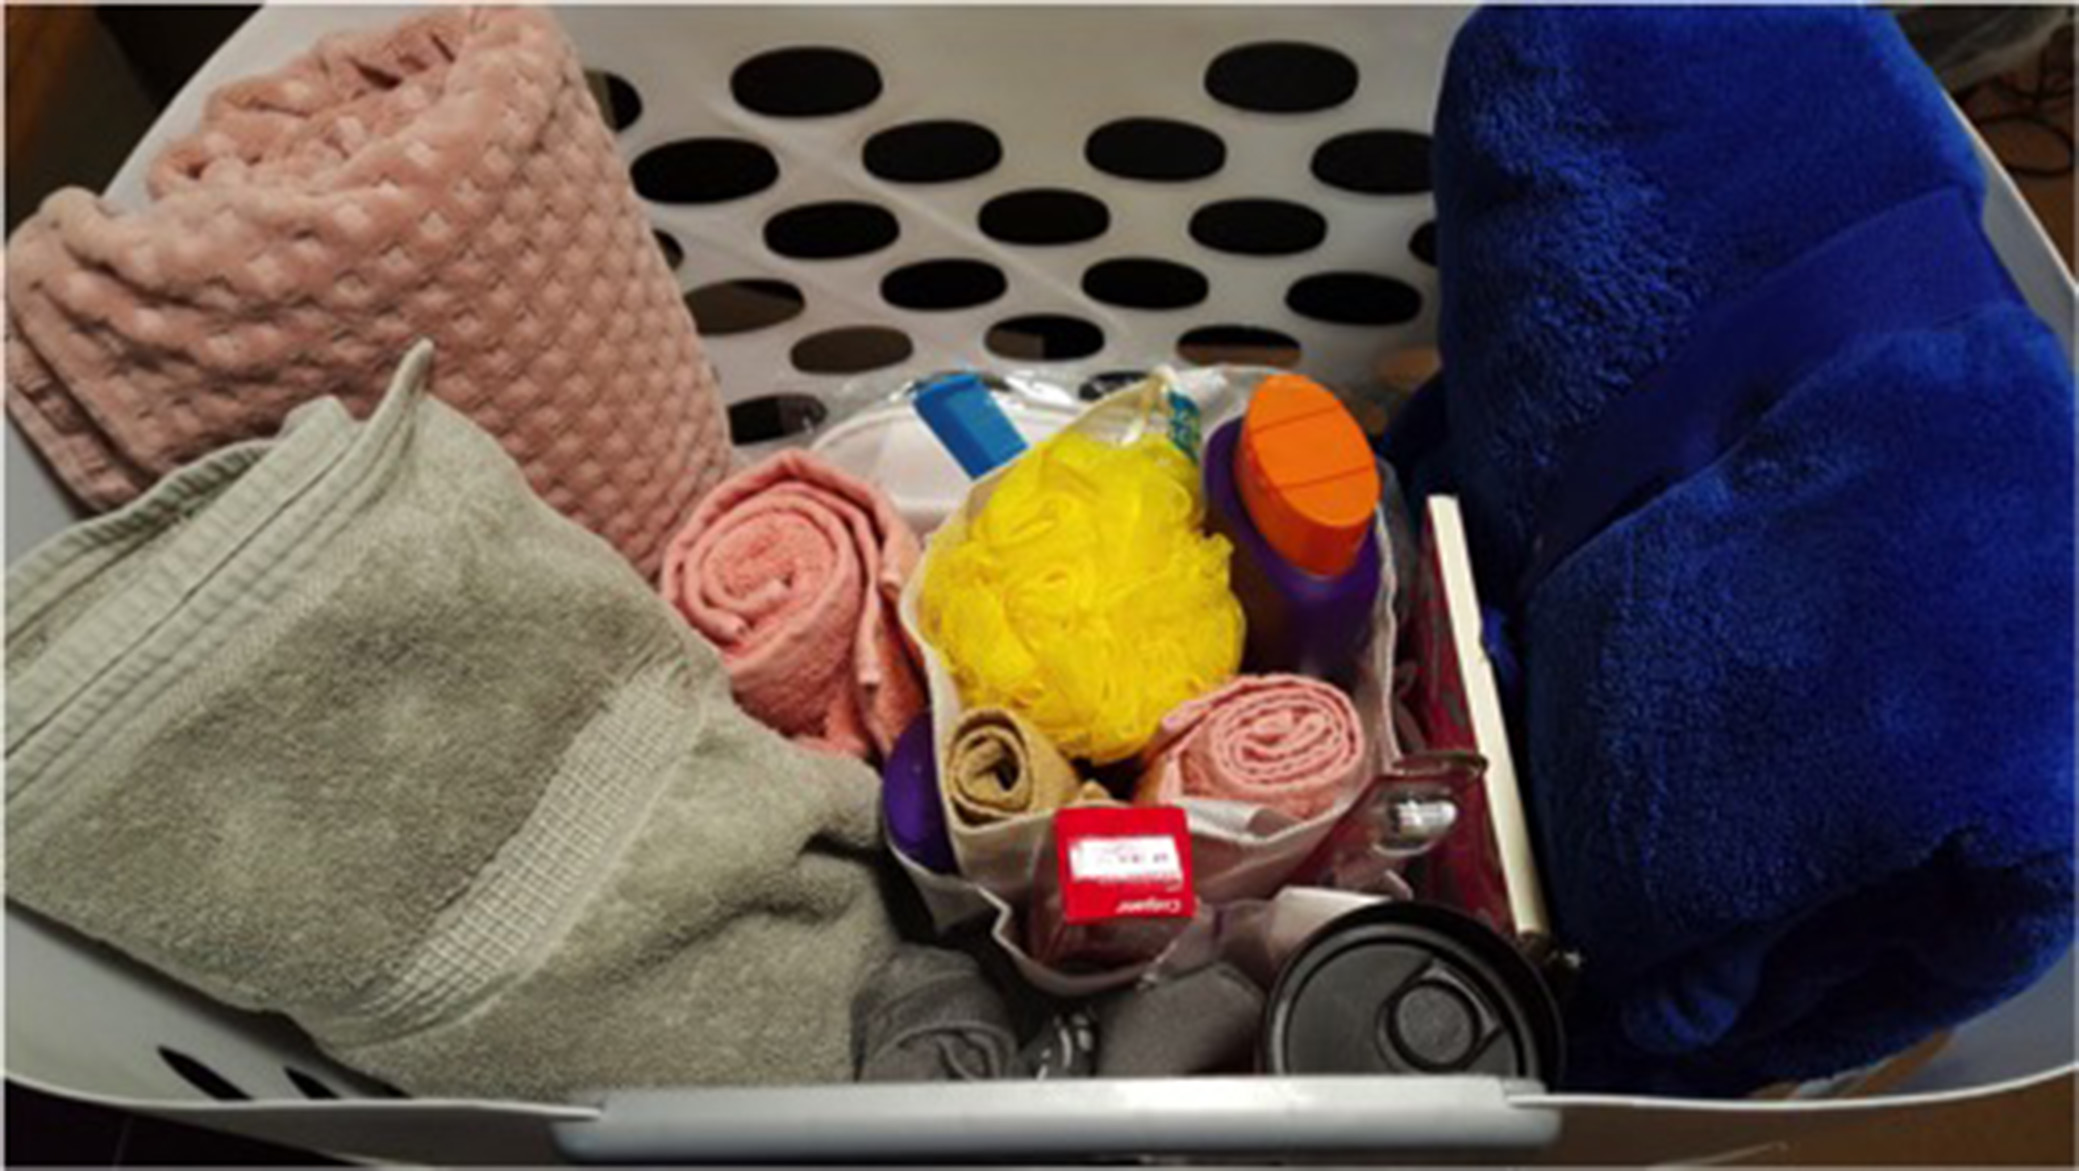 The welcome basket includes a variety of items such as shampoo, wash cloths and bath towels to name a few.